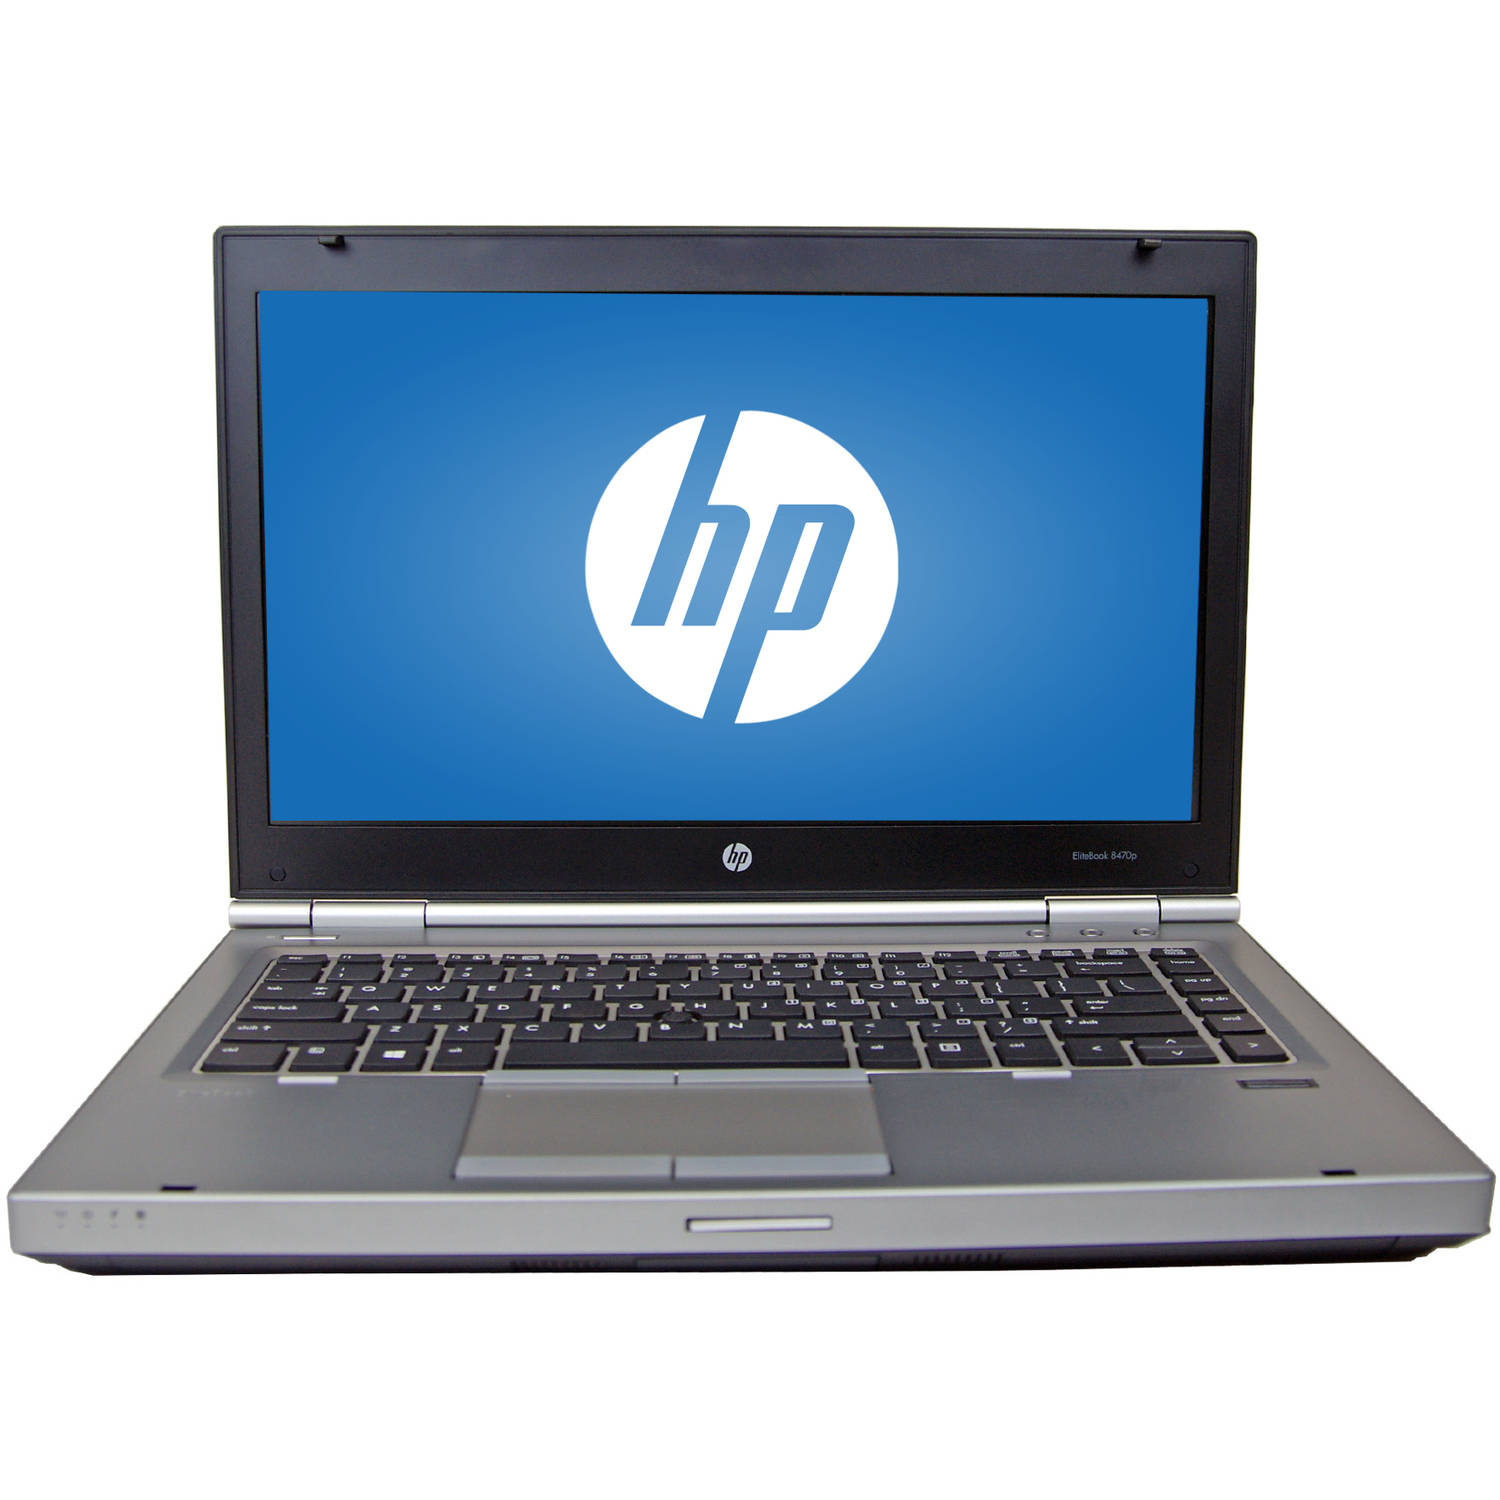 "Refurbished HP 14"" EliteBook 8470P Laptop PC with Intel Core i5-3320M Processor, 8GB Memory, 256GB SSD and Windows 10 Pro"